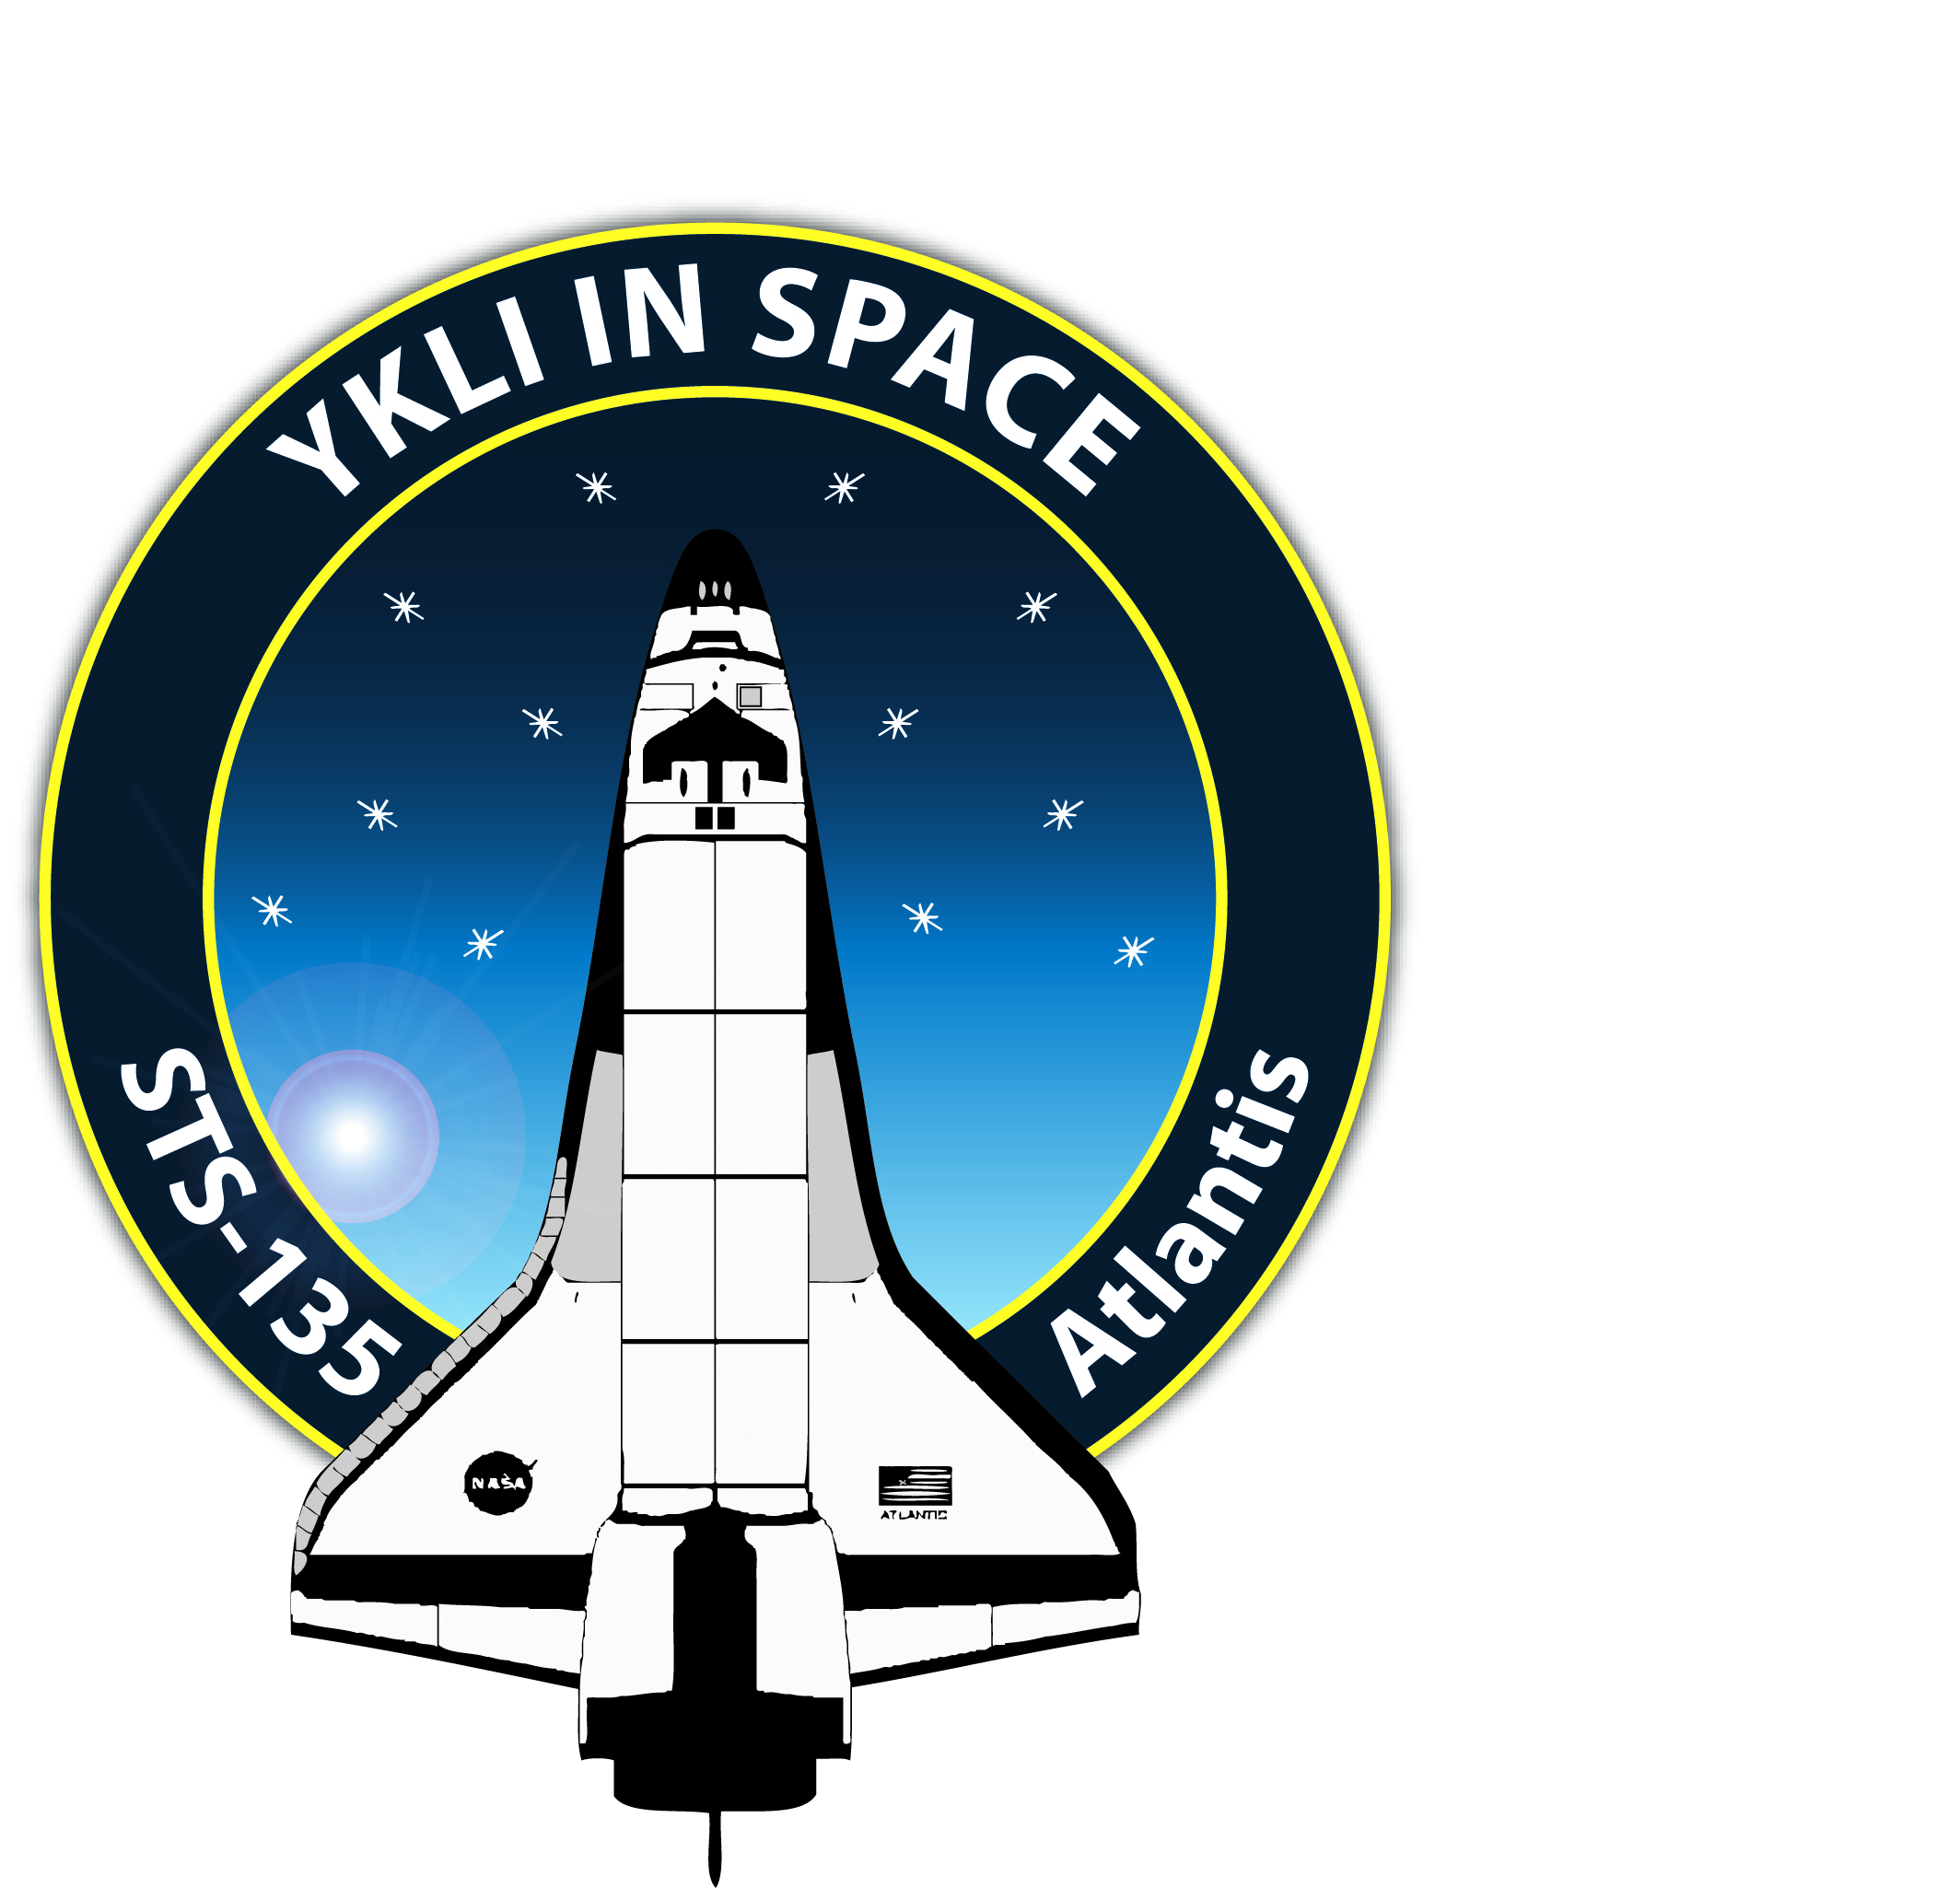 space shuttle mission logos - photo #6